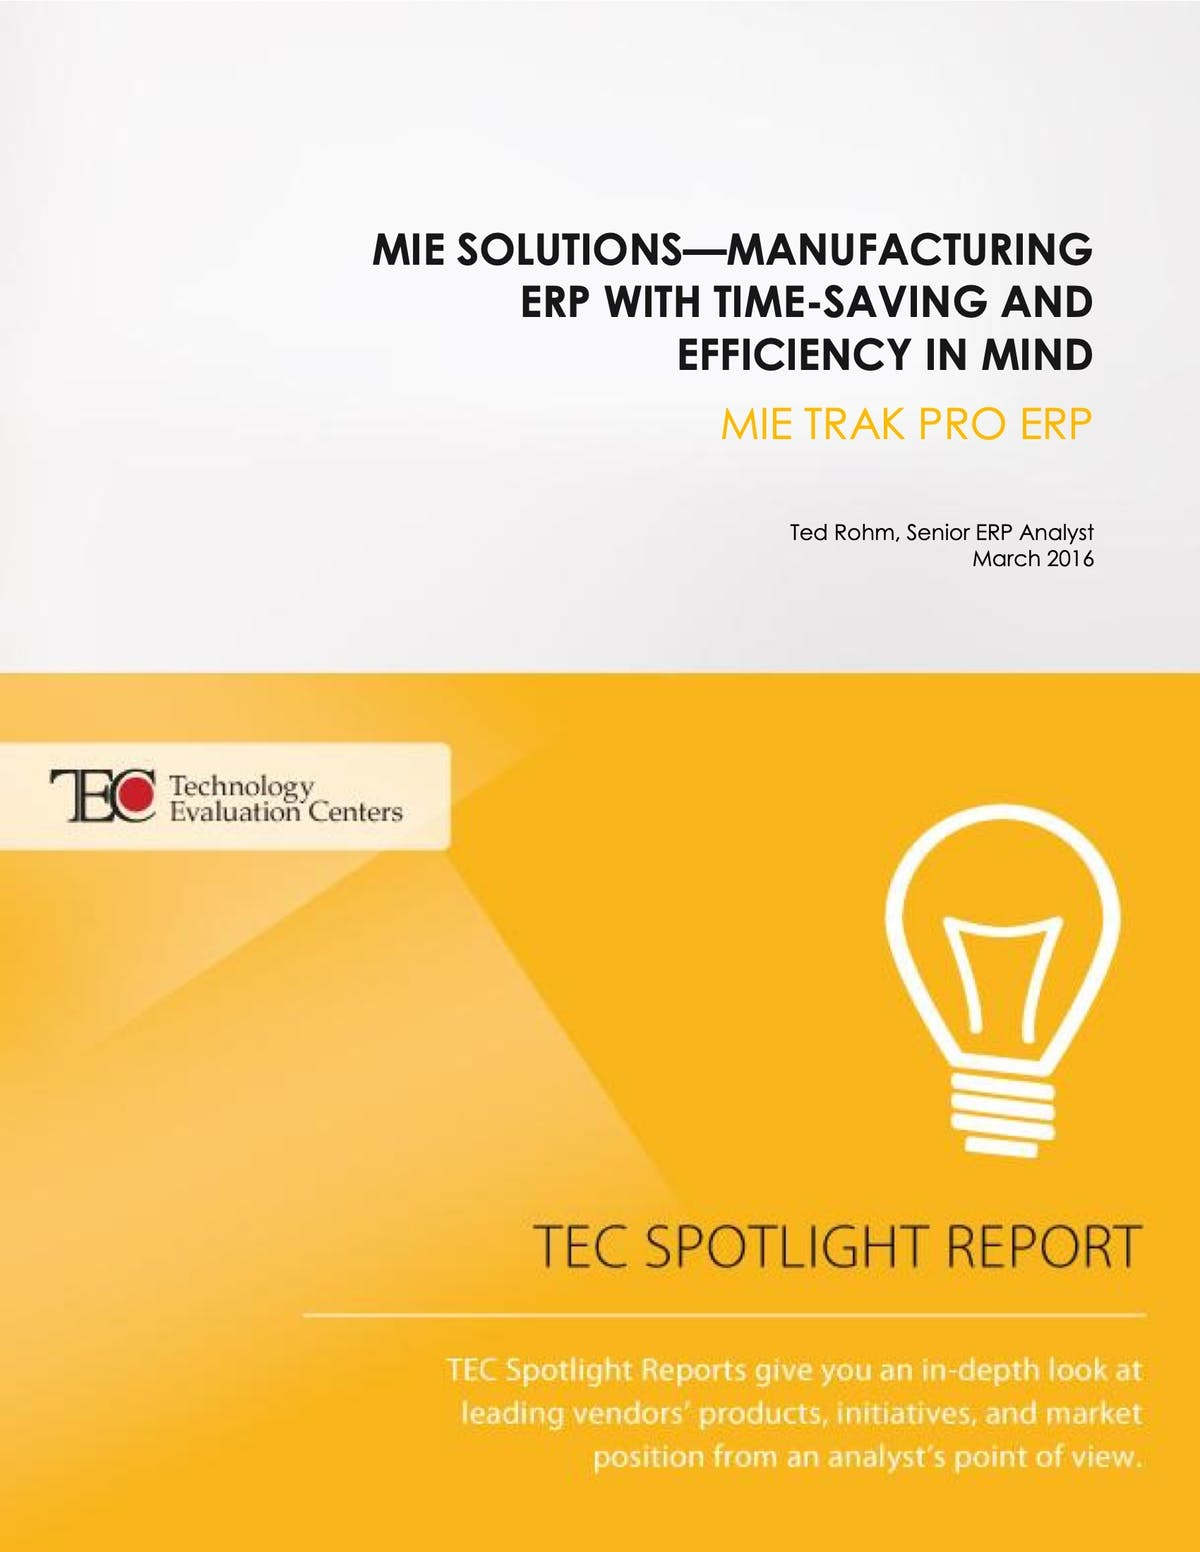 MIE Trak Pro White Paper - Manufacturing ERP with Time Saving Efficiency in Mind